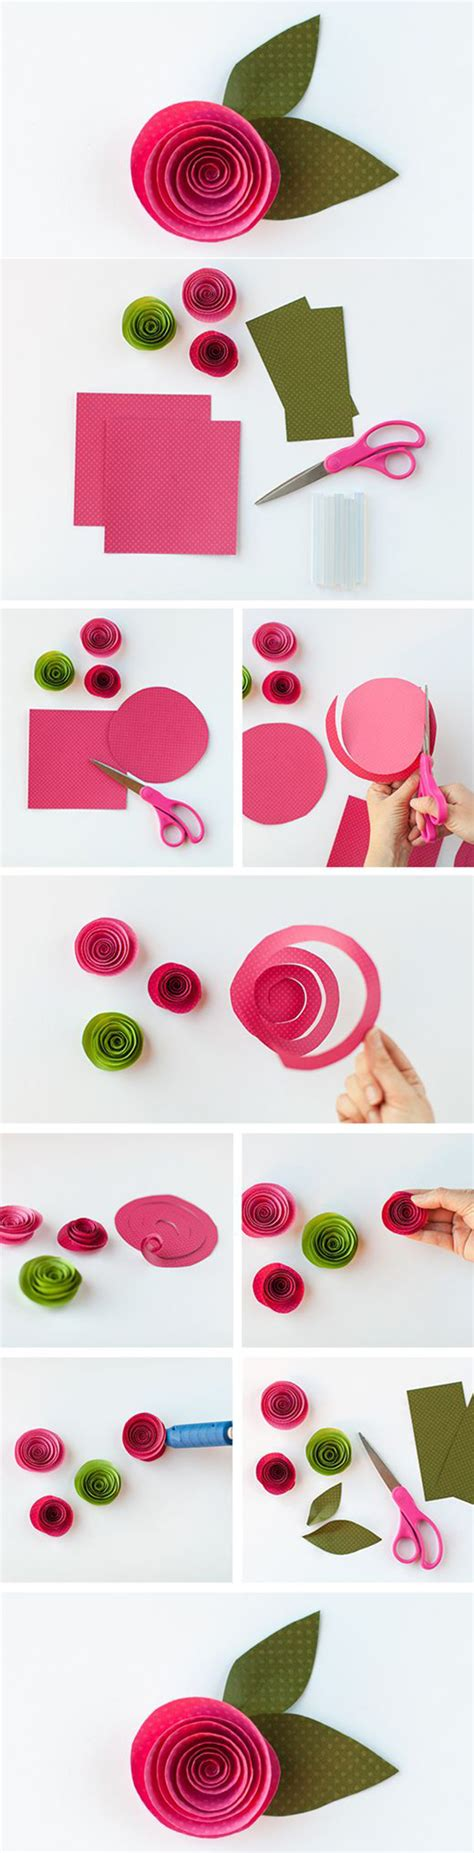 How To Make Paper Roses With Construction Paper - easy and beautiful paper flower best diy ideas